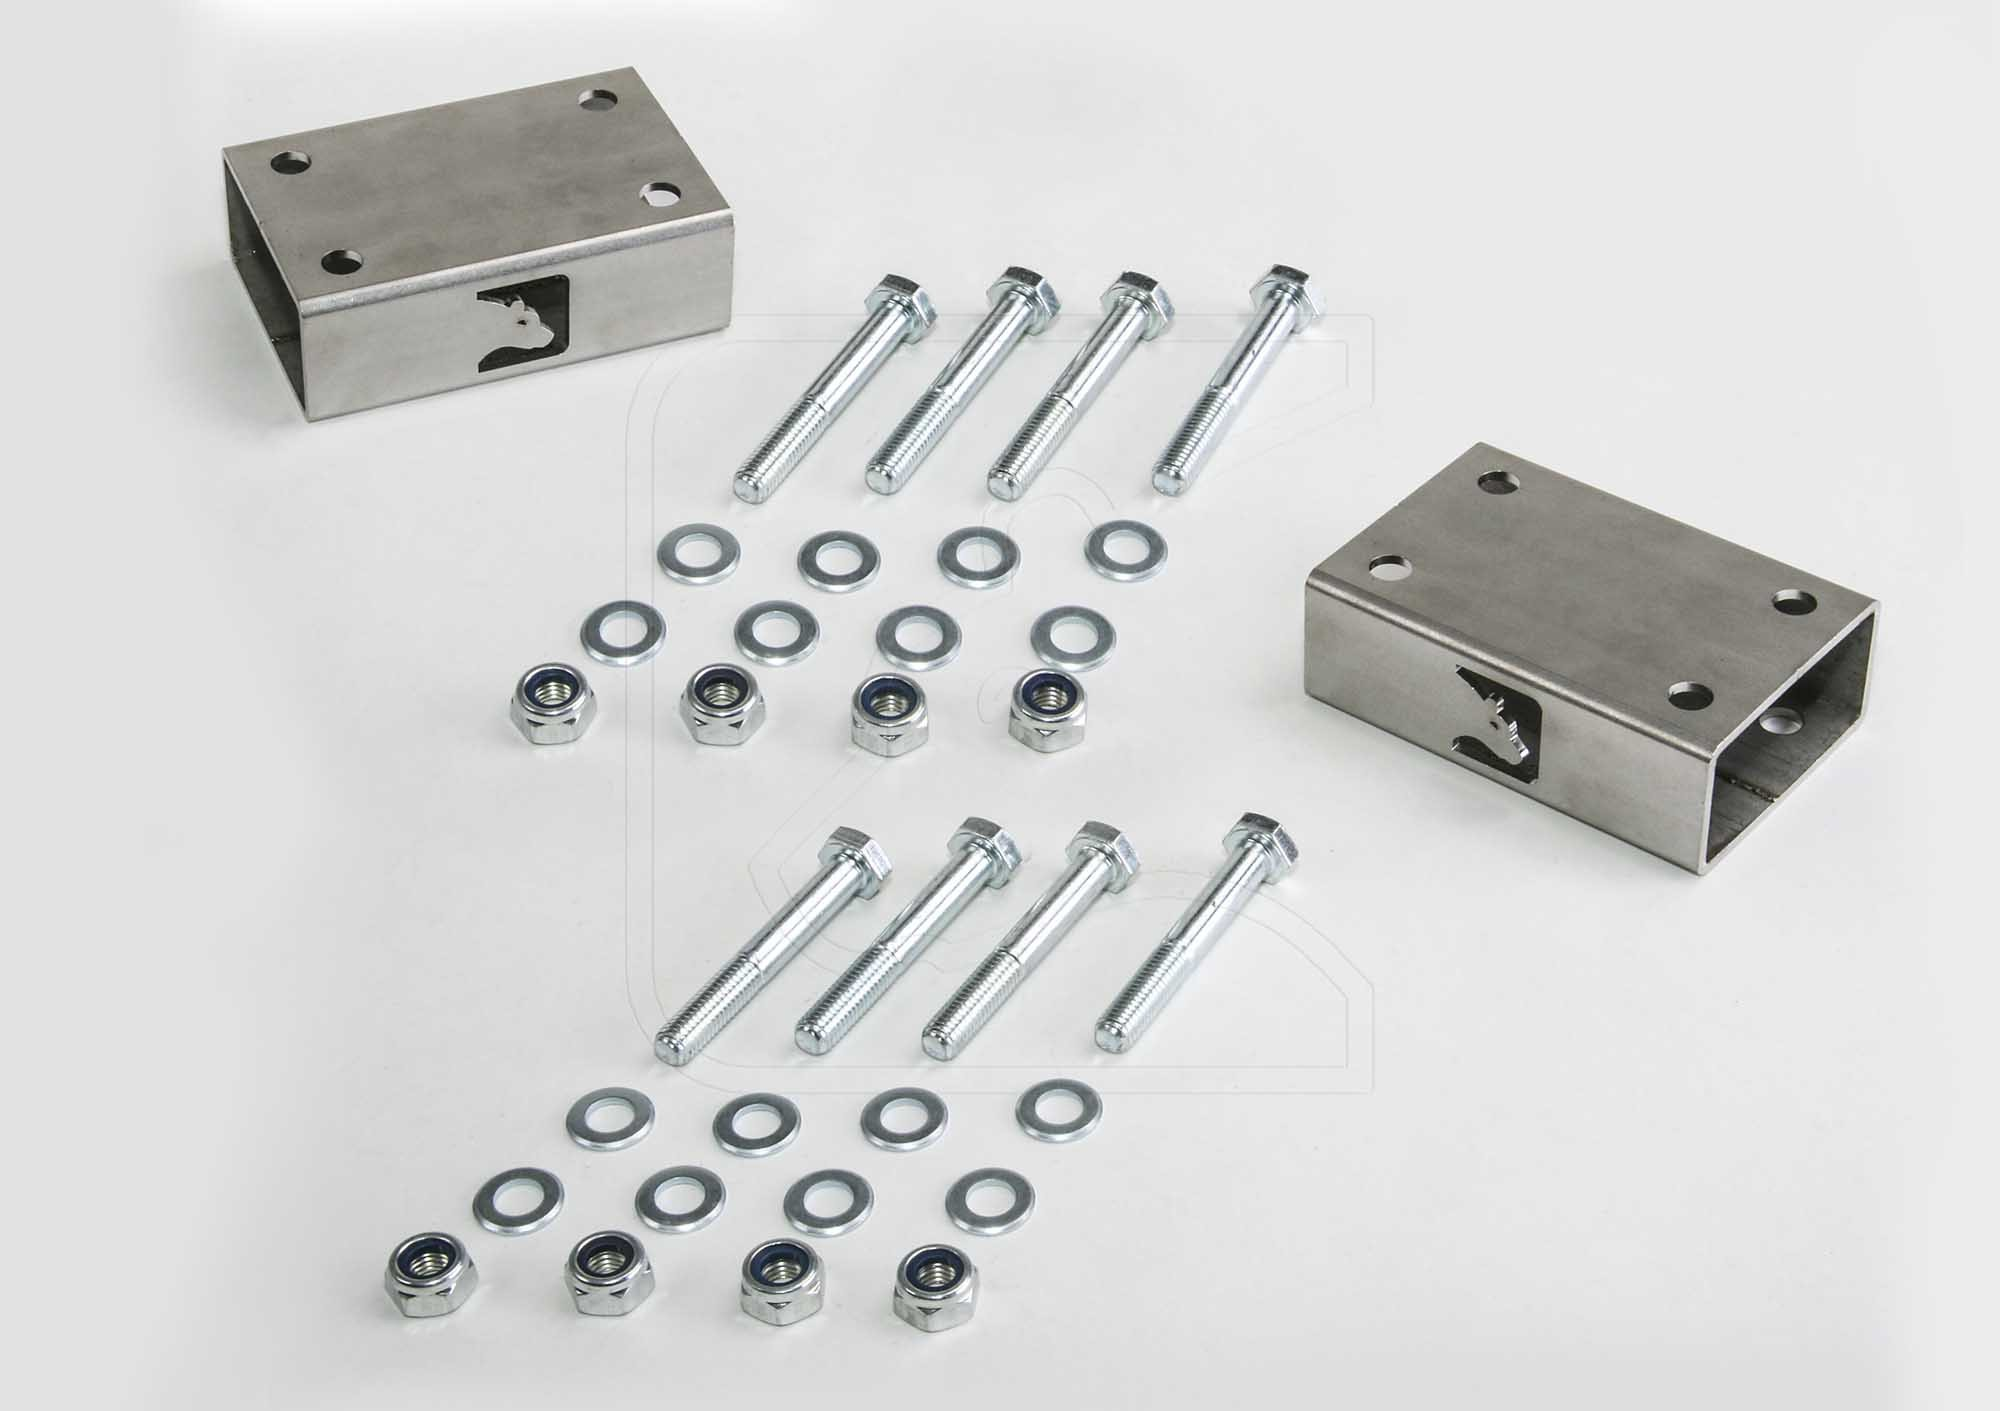 Spacers for rear axle sway bar, for Defender 90/110/130